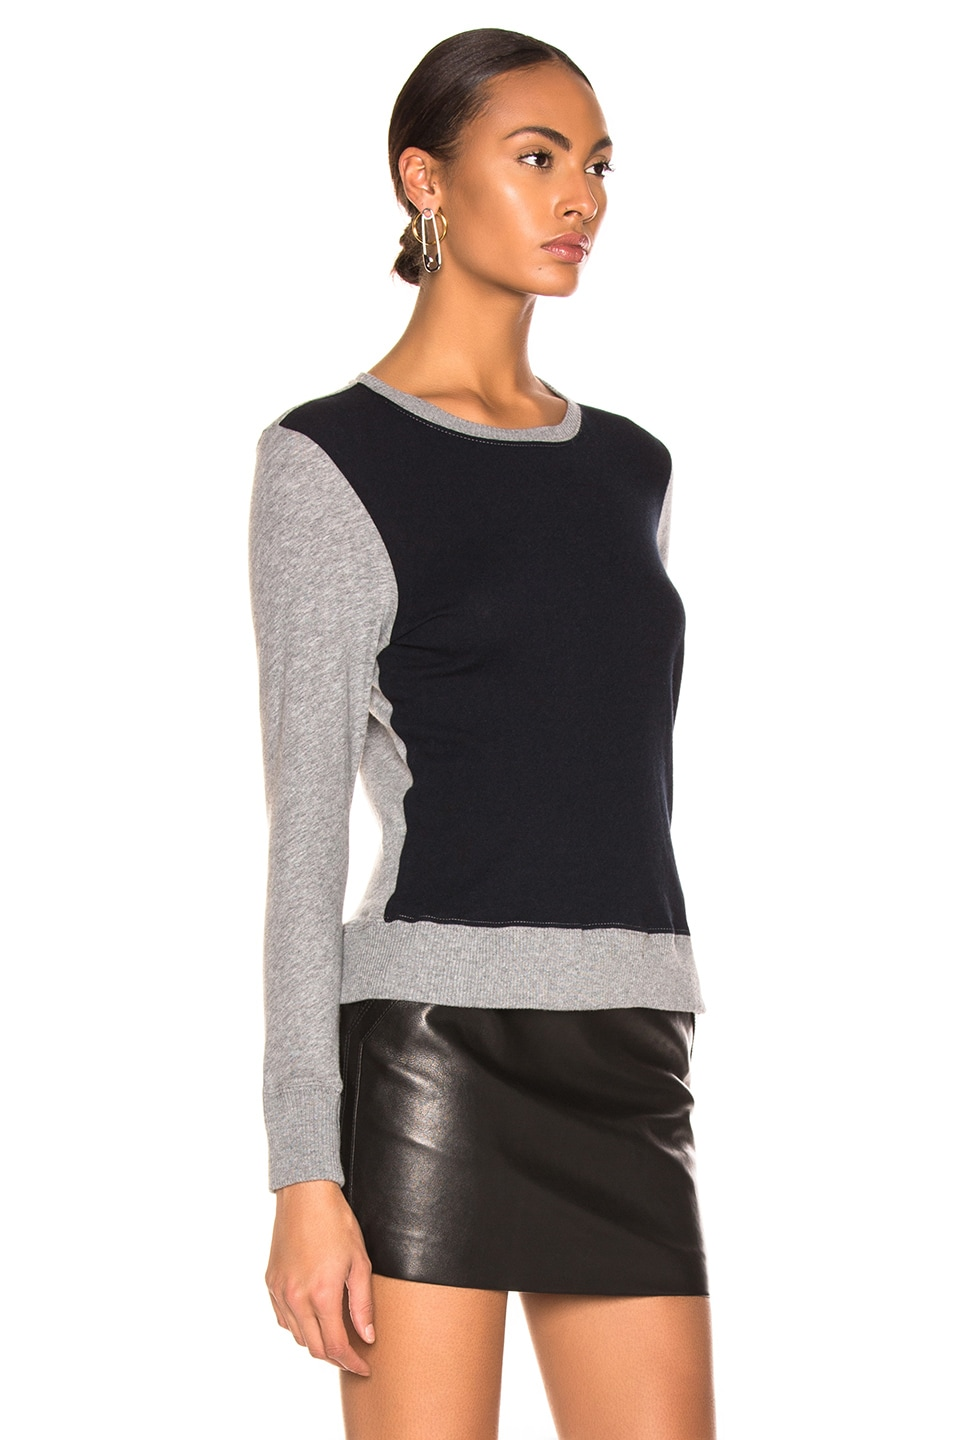 Image 2 of Enza Costa Cashmere Color Block Sweatshirt in Smoke & Cadet